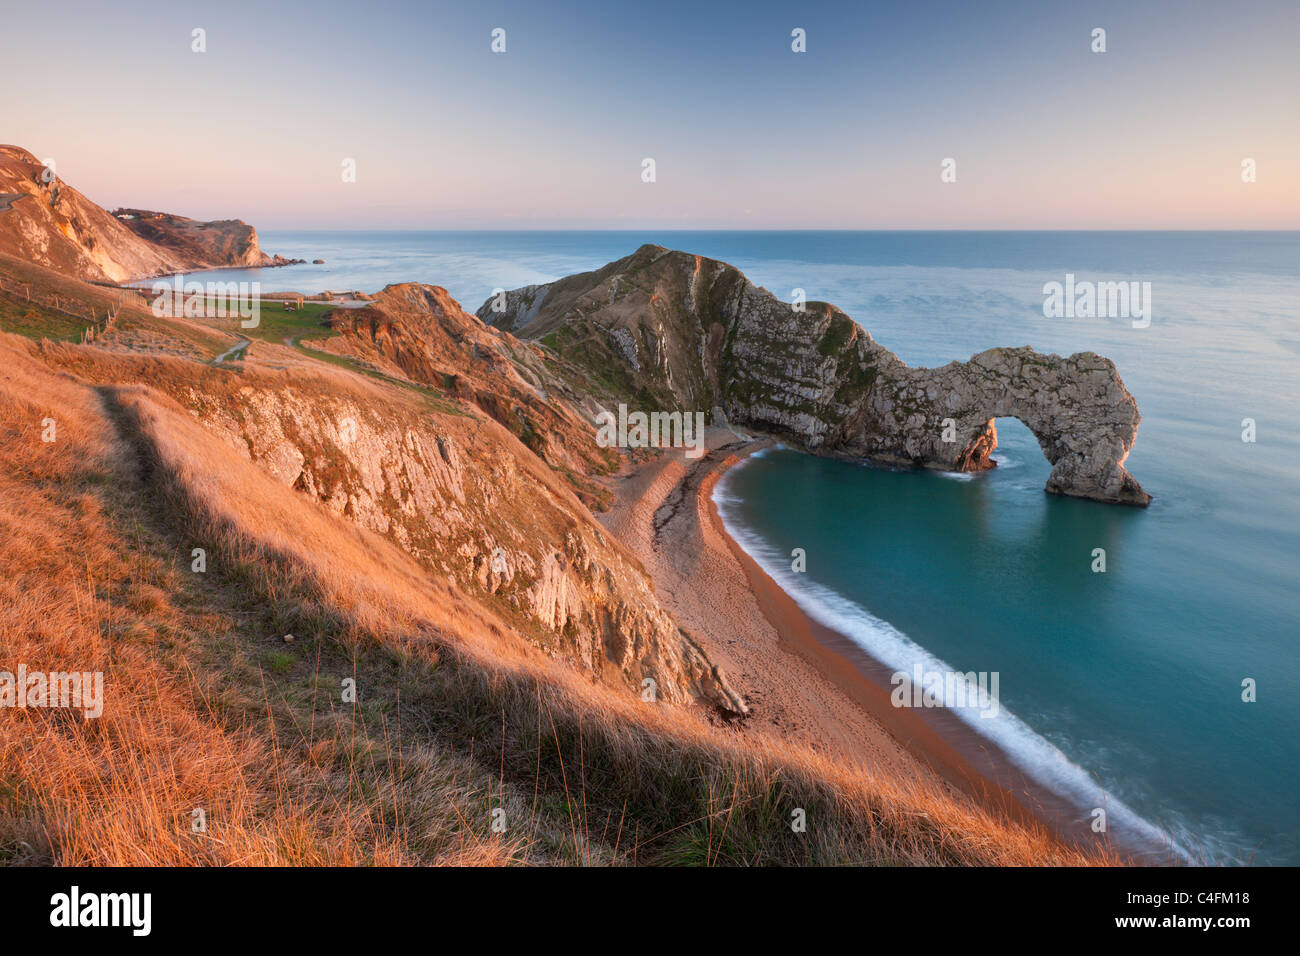 View from cliff tops down into Durdle Door Dorset England. Winter (January) 2011 & View from cliff tops down into Durdle Door Dorset England ...